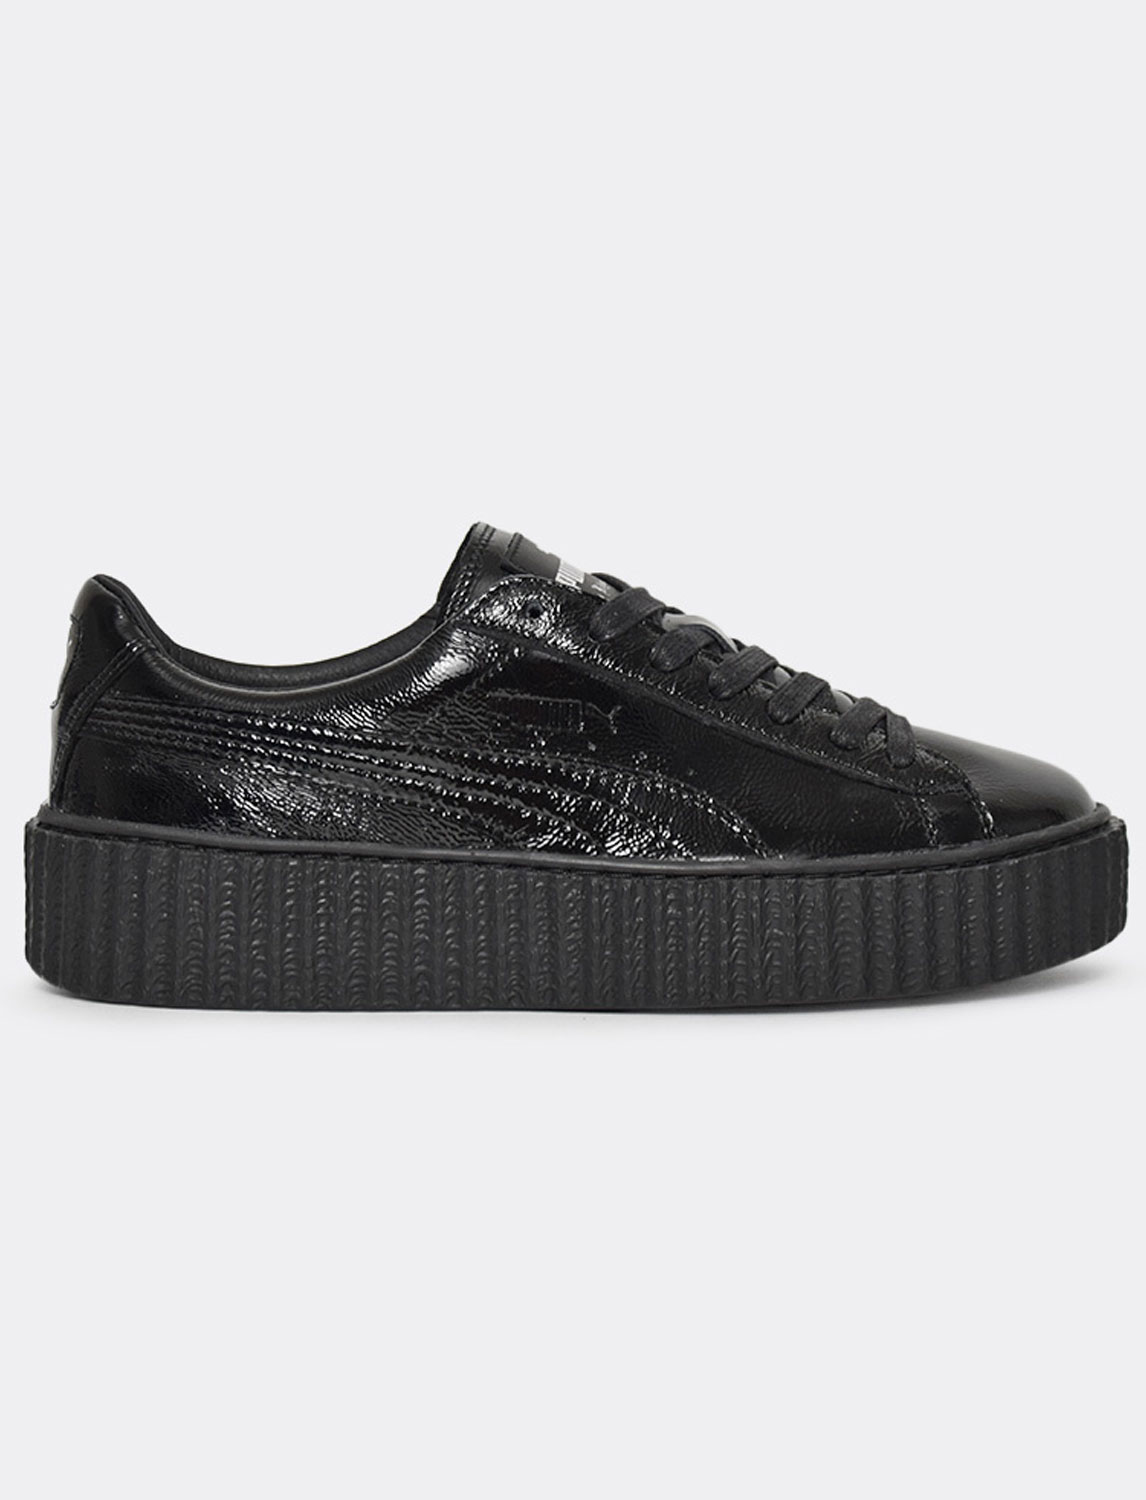 puma x fenty creeper wrinkled patent. Black Bedroom Furniture Sets. Home Design Ideas